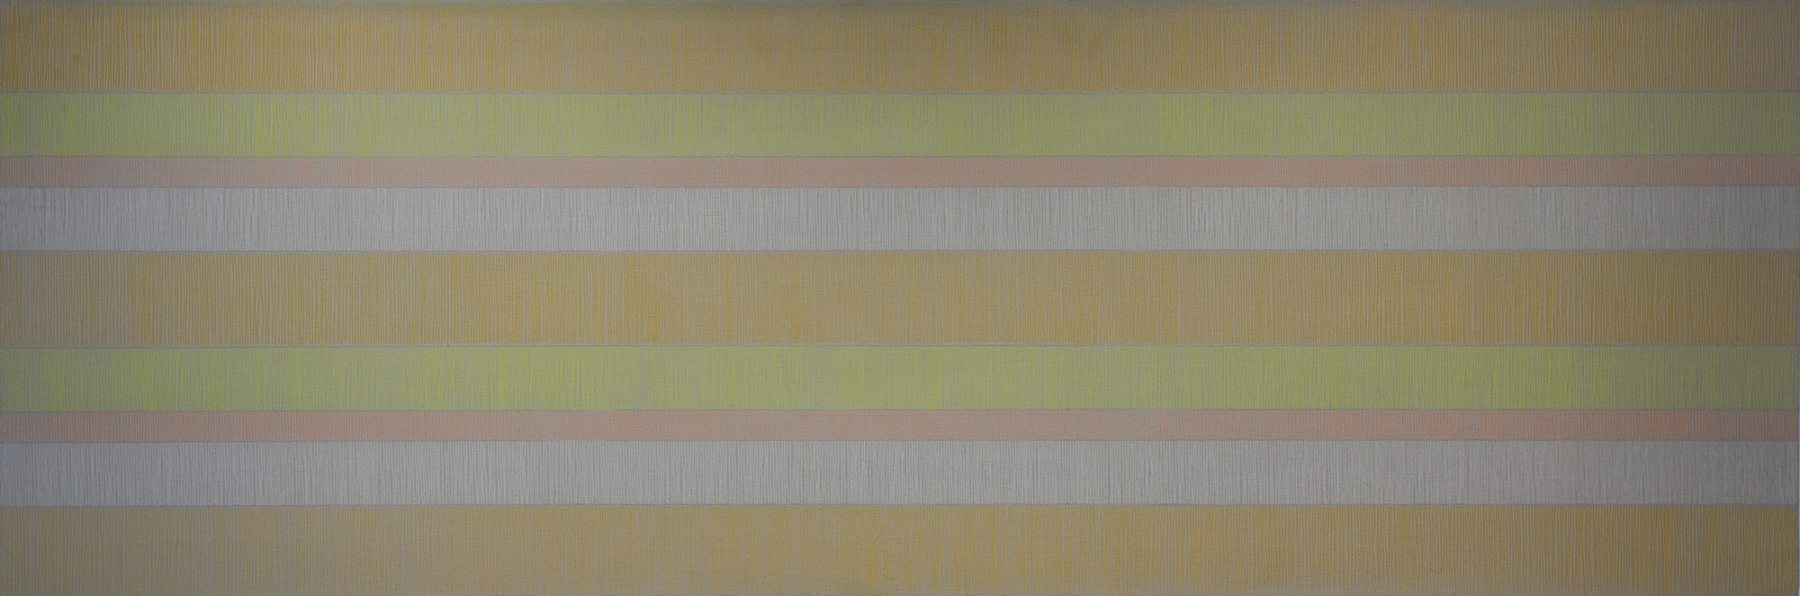 """DRAWING 26-VI-15 2015 Pencil crayon and flashe paint on canvas, 27 x 81""""  Private Collection"""